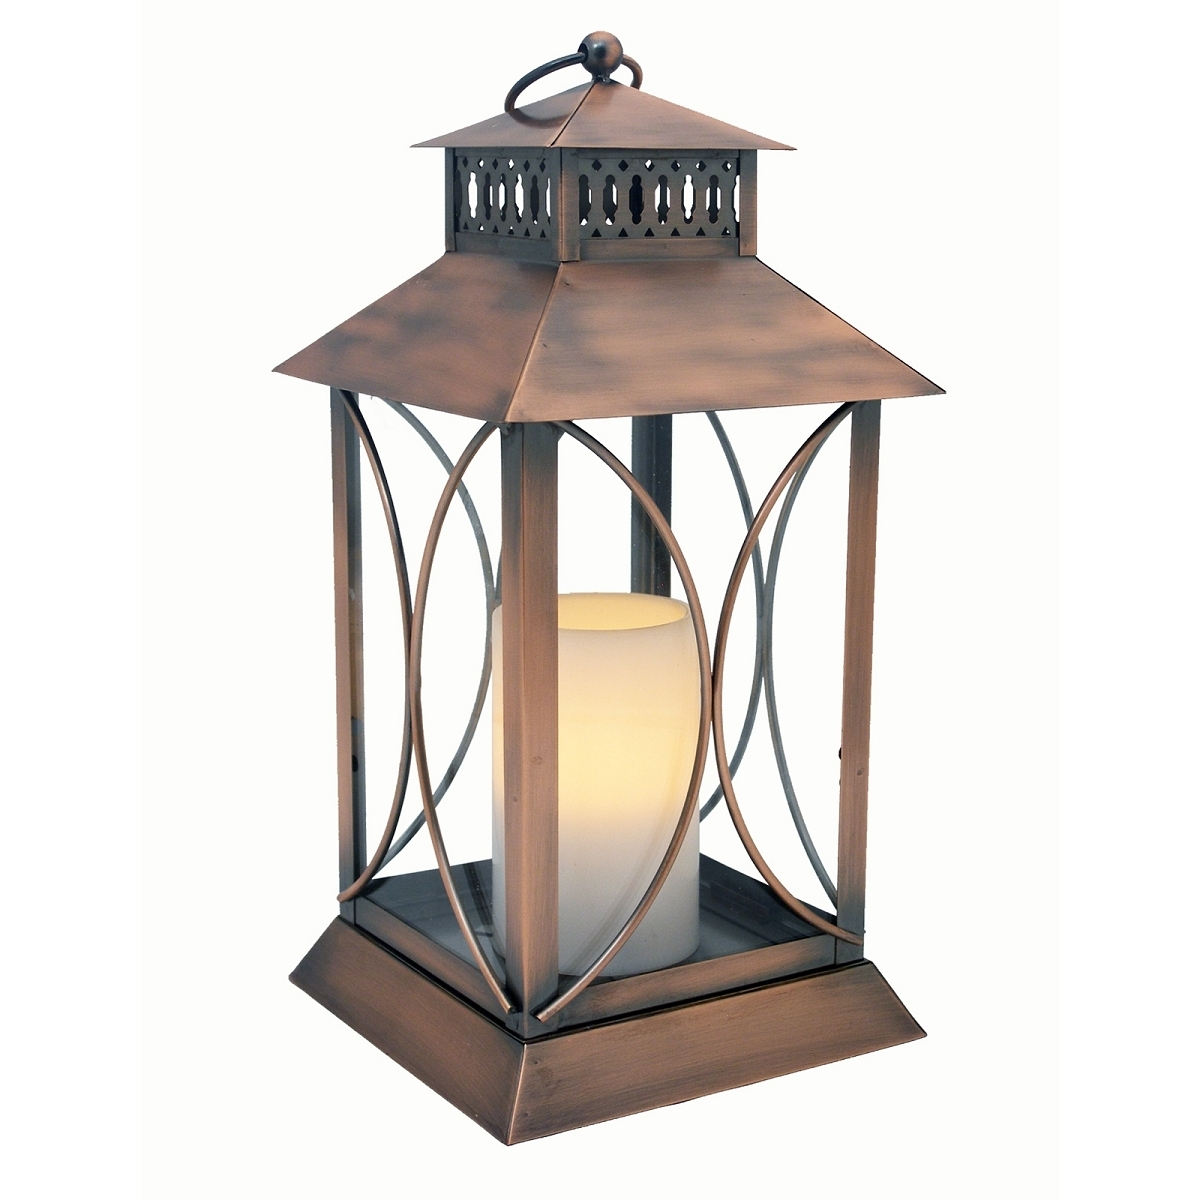 Newest Neuporte Flameless Candle Lantern With Timer Indoor Outdoor Inside Outdoor Lanterns With Timers (Gallery 5 of 20)